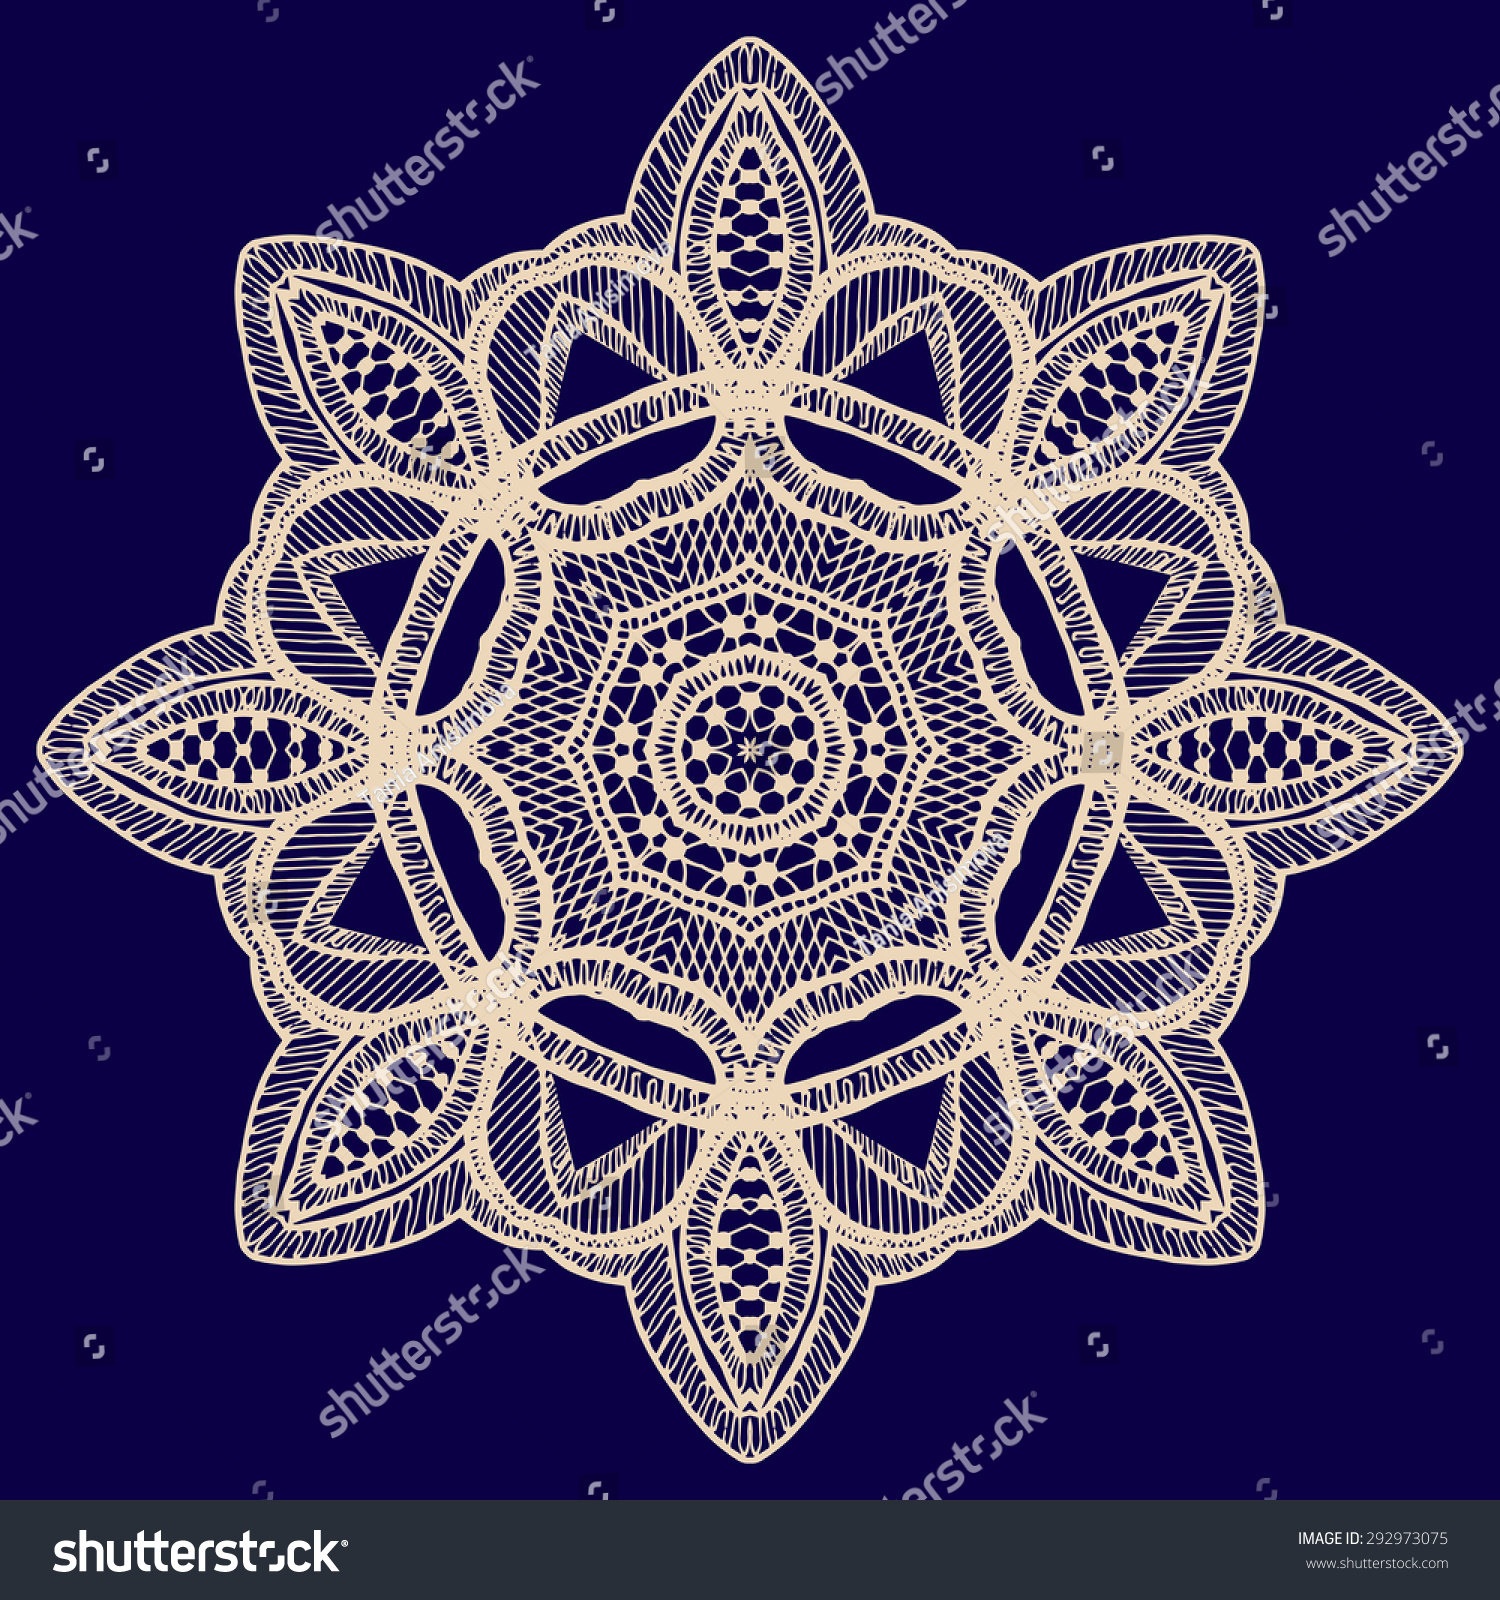 Vintage Handmade Knitted Doily Vector Round Stock Photo (Photo ...